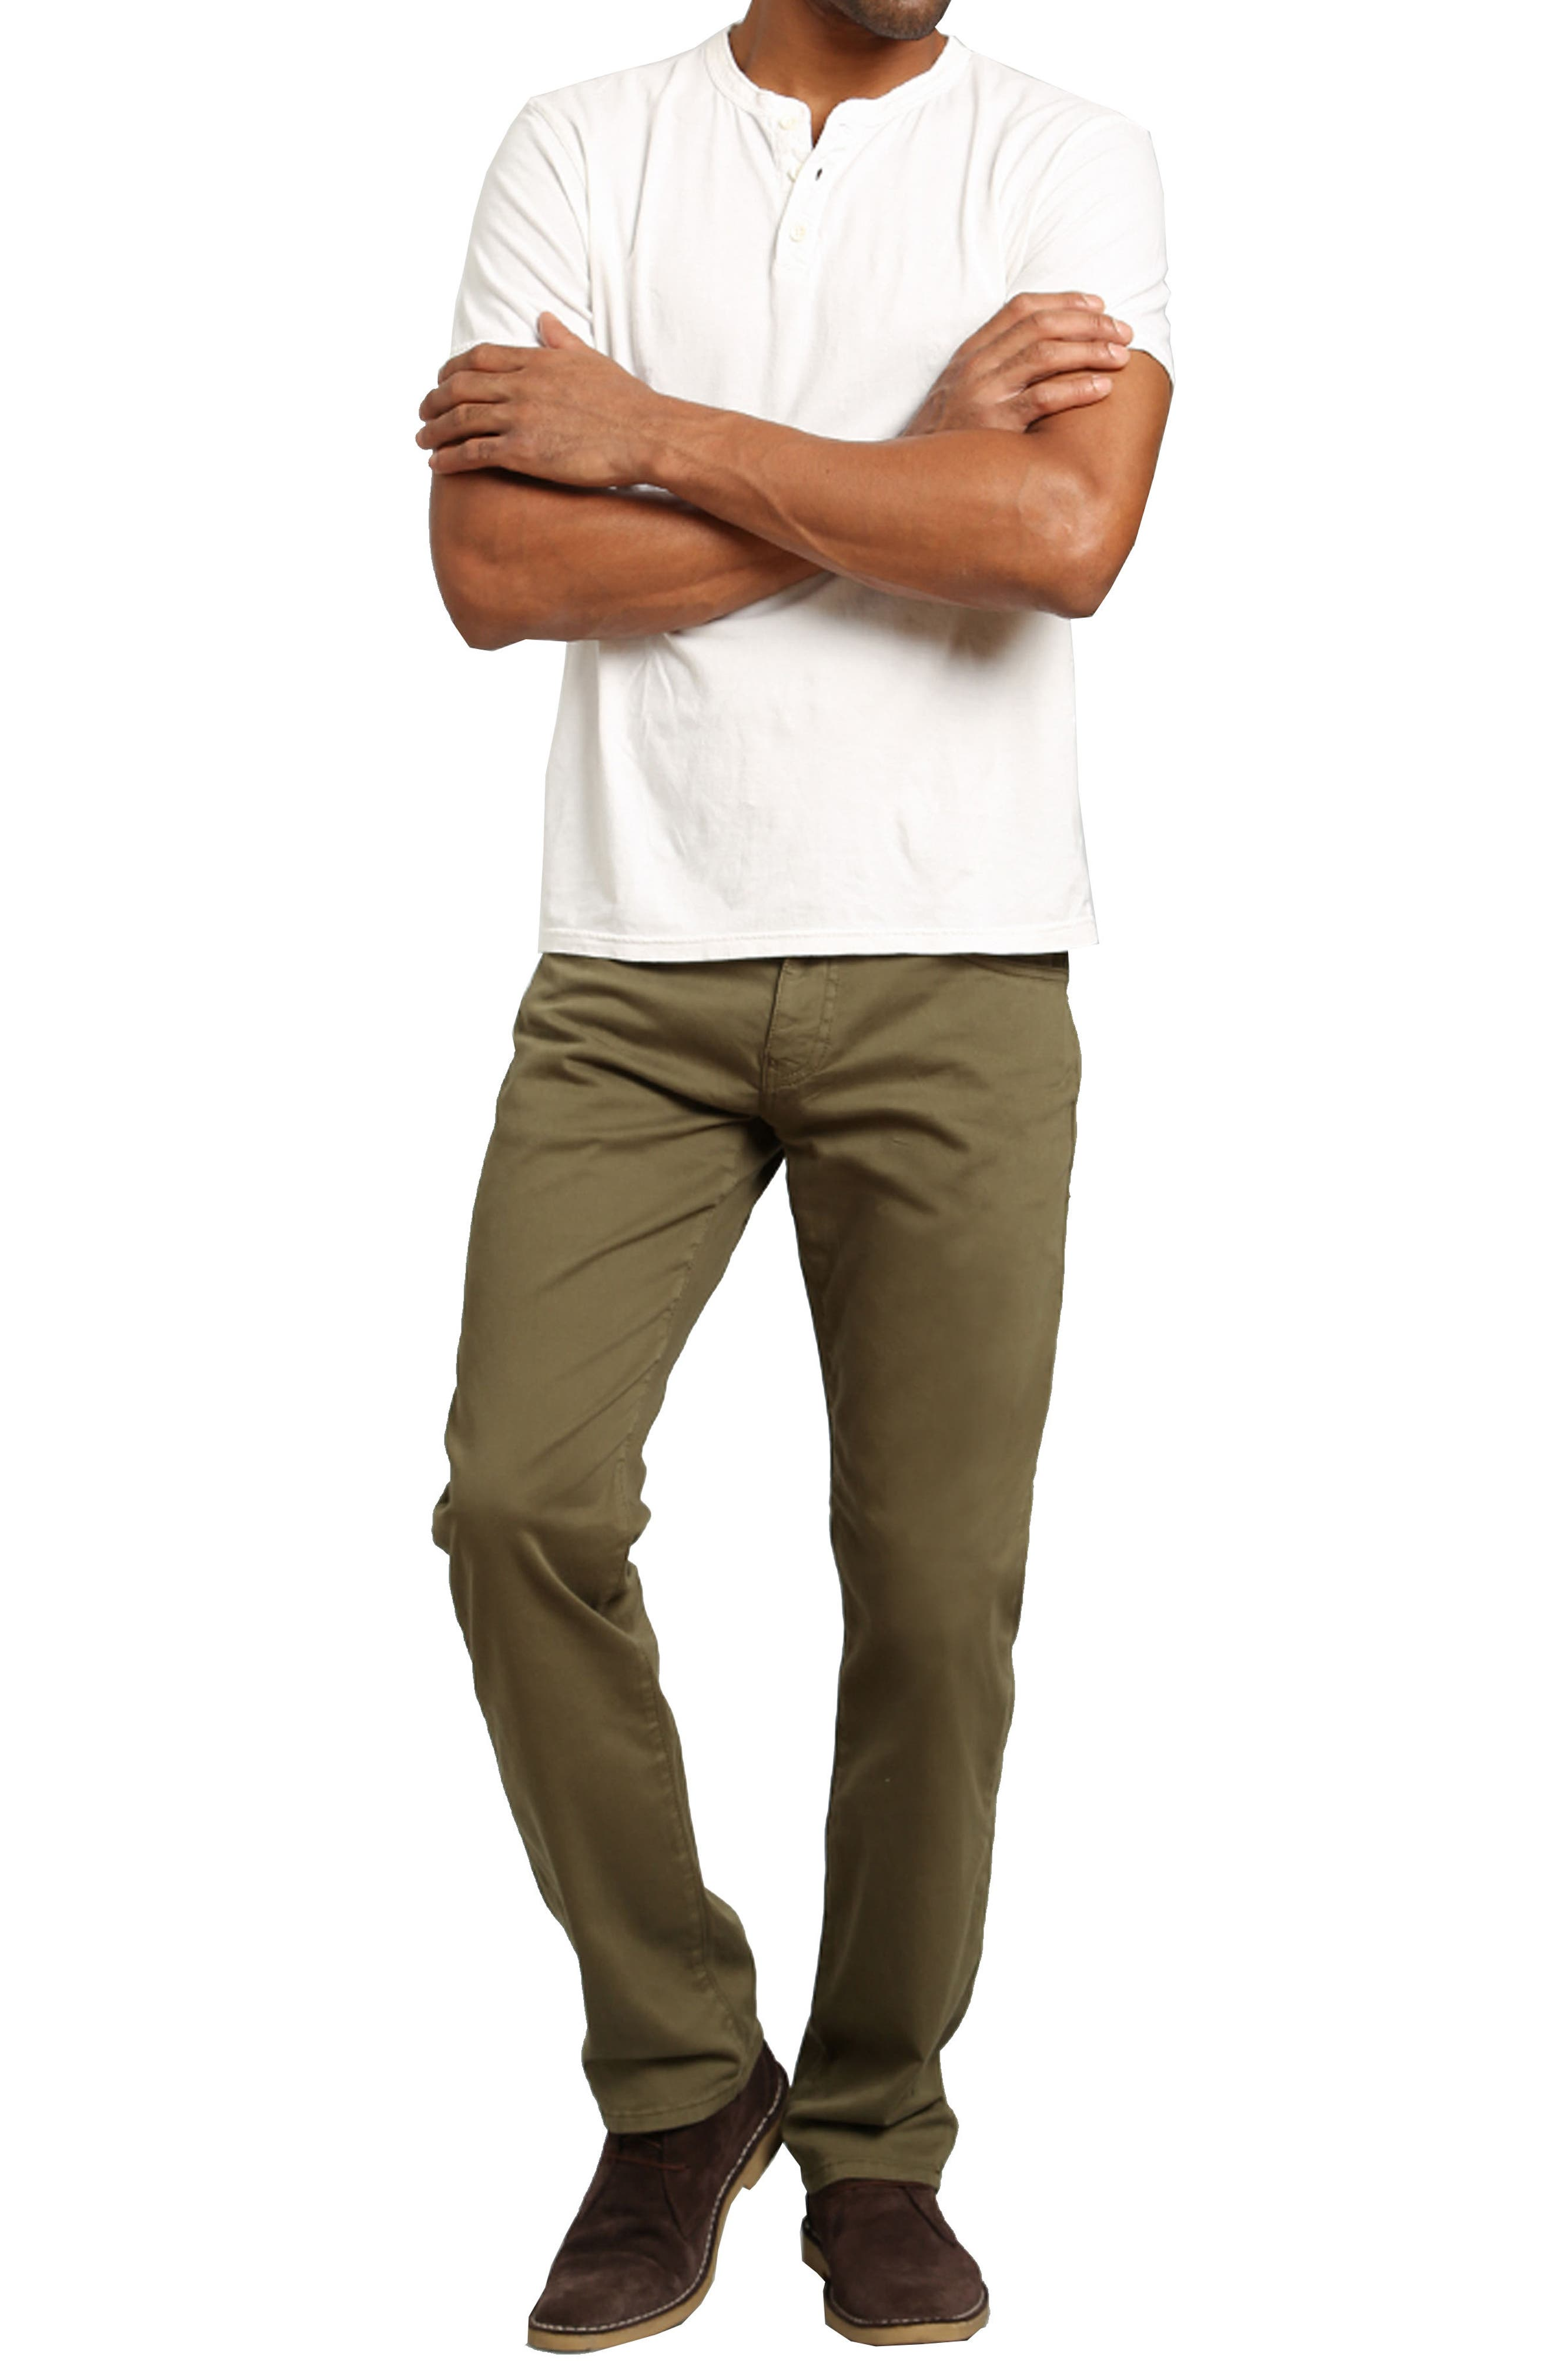 Zach Straight Fit Twill Pants,                             Alternate thumbnail 4, color,                             GREEN OLIVE TWILL